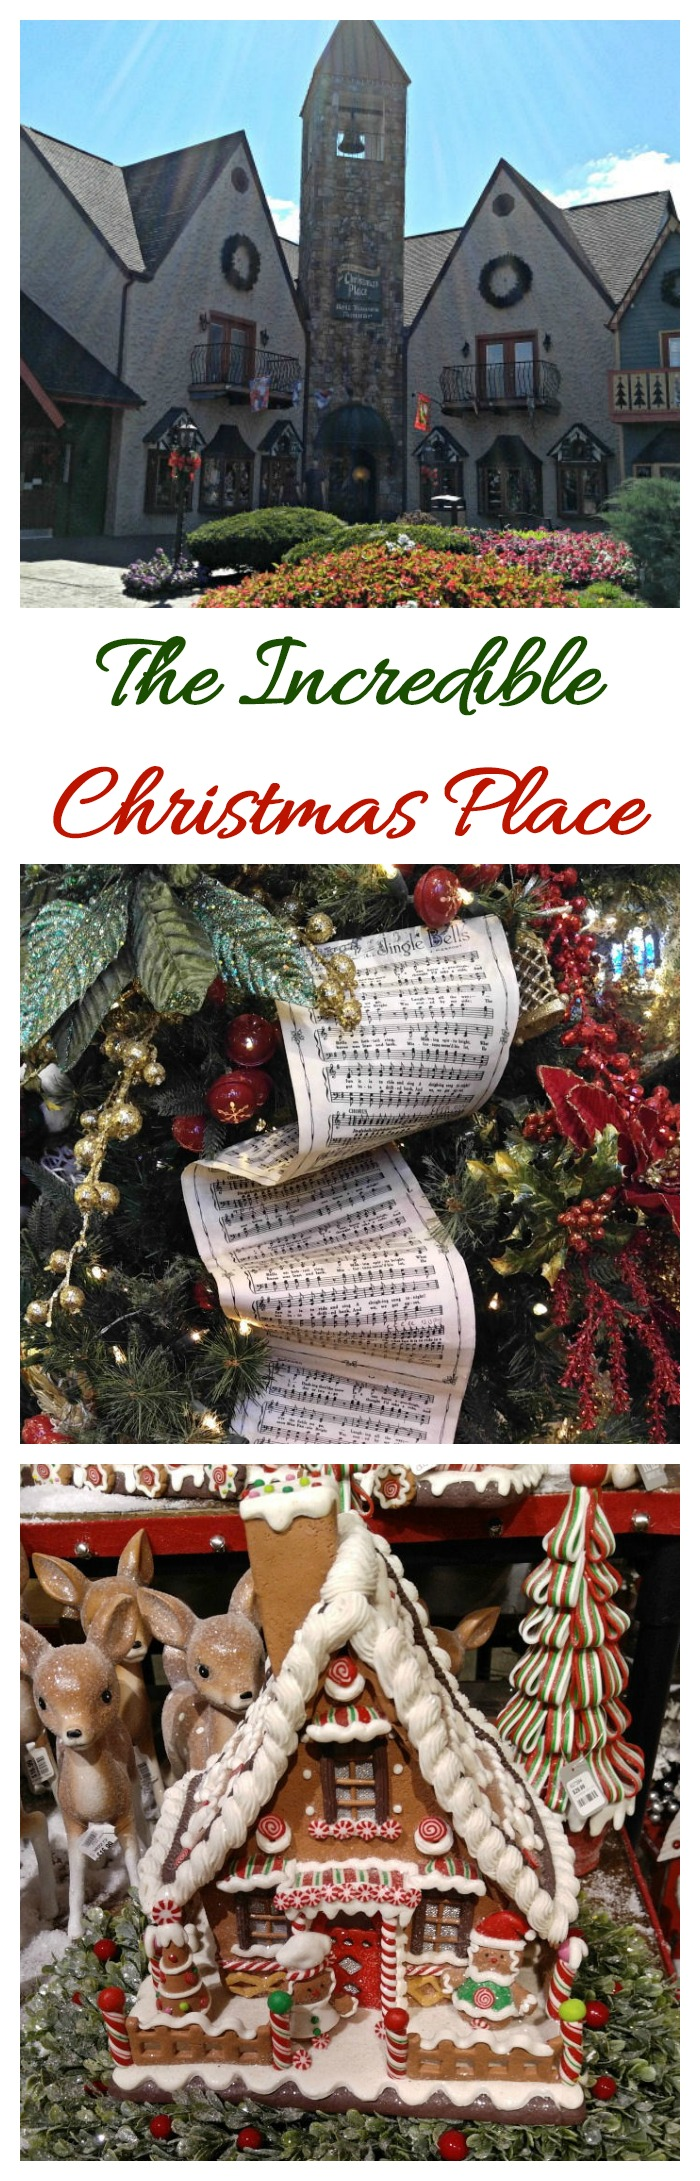 The Incredible Christmas Place is one of the largest Christmas stores in the United States. Join me for a tour. #incrrediblechristmasplace #christmasstore